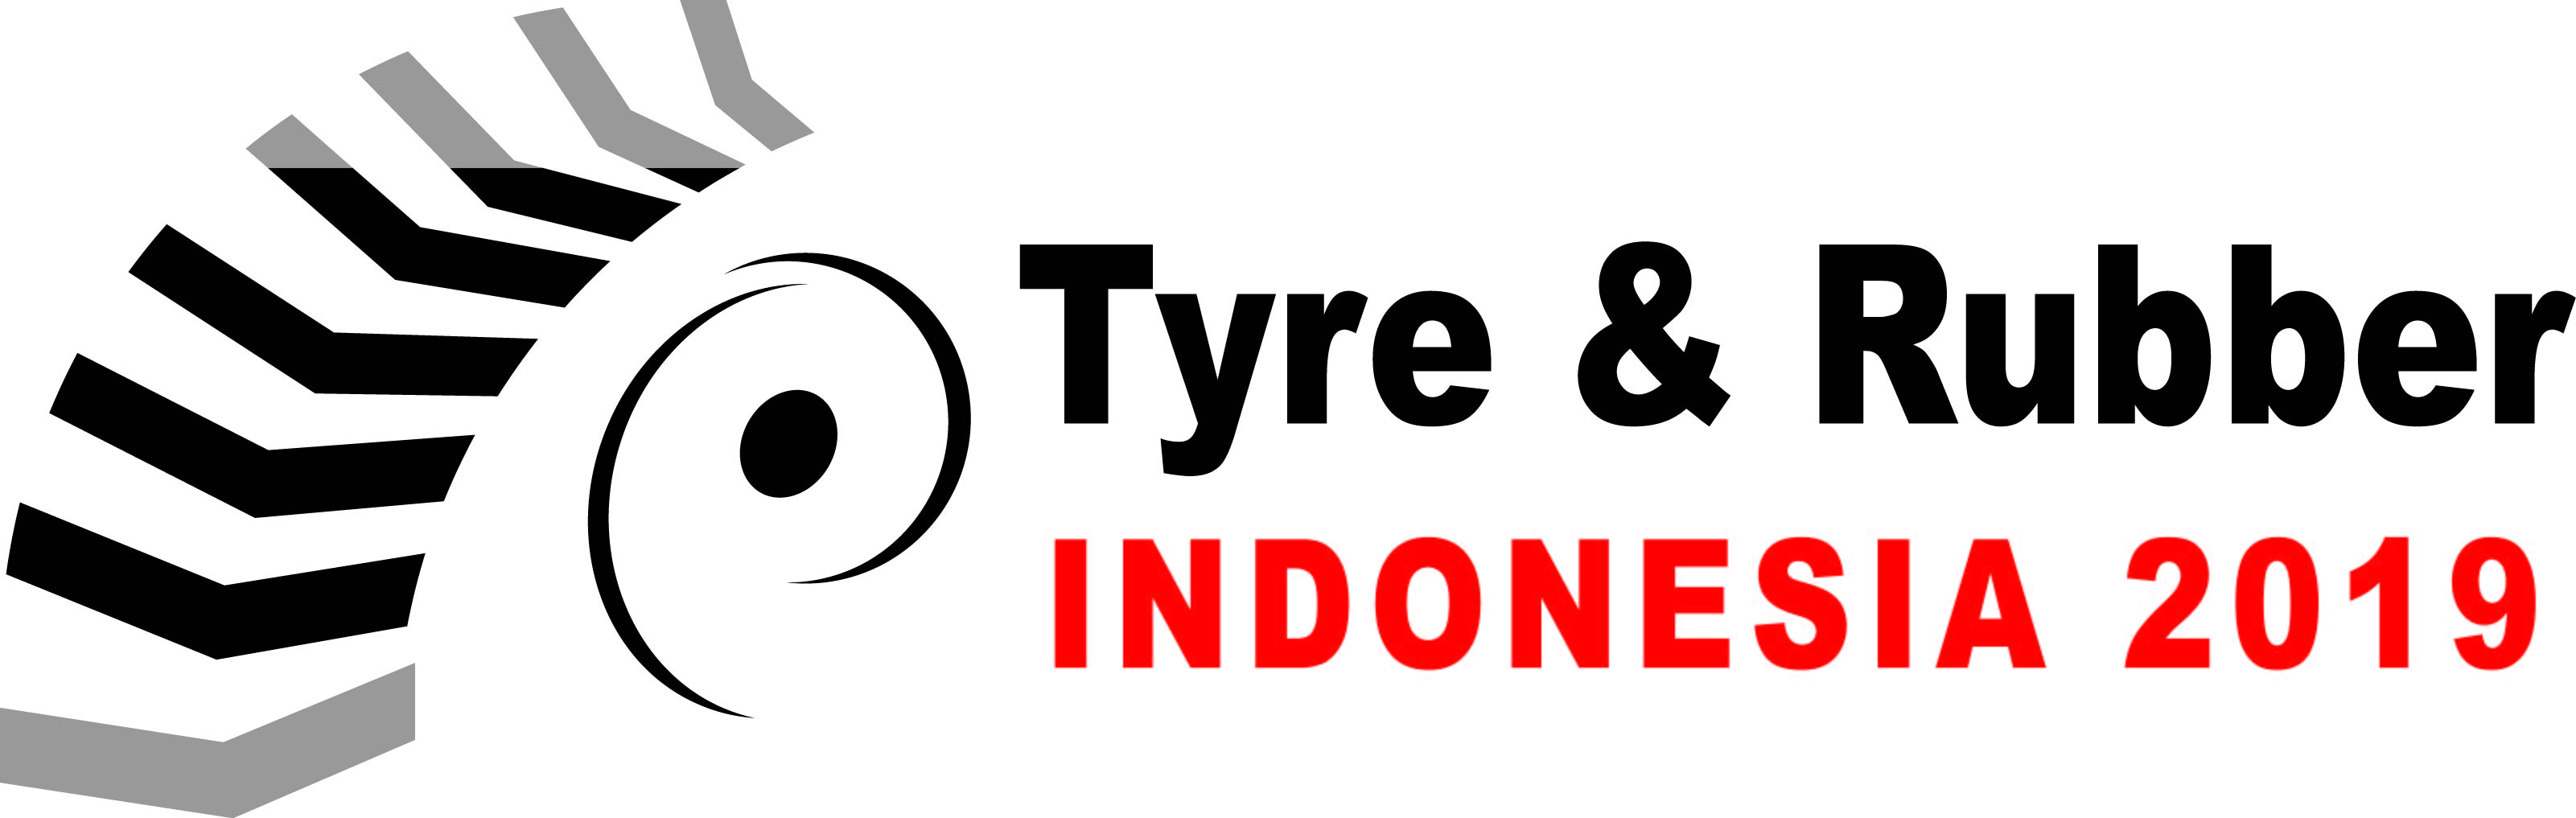 Tyre Rubber 2019